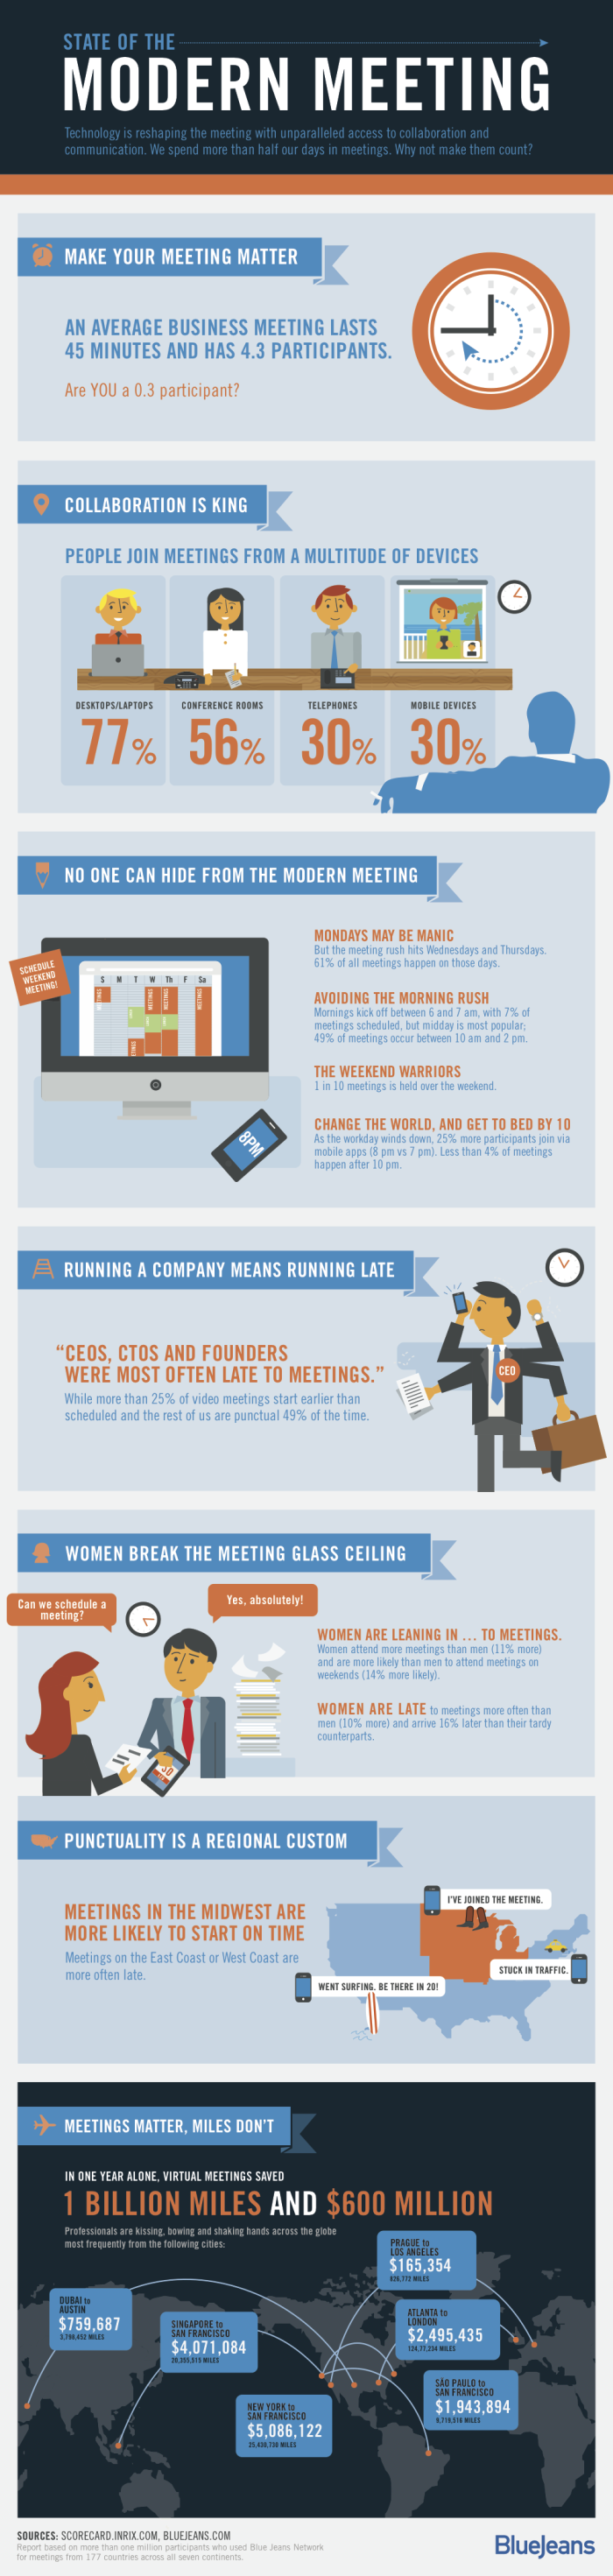 RebeccaLewis_July2013_state-of-the-modern-meeting-Infographic2